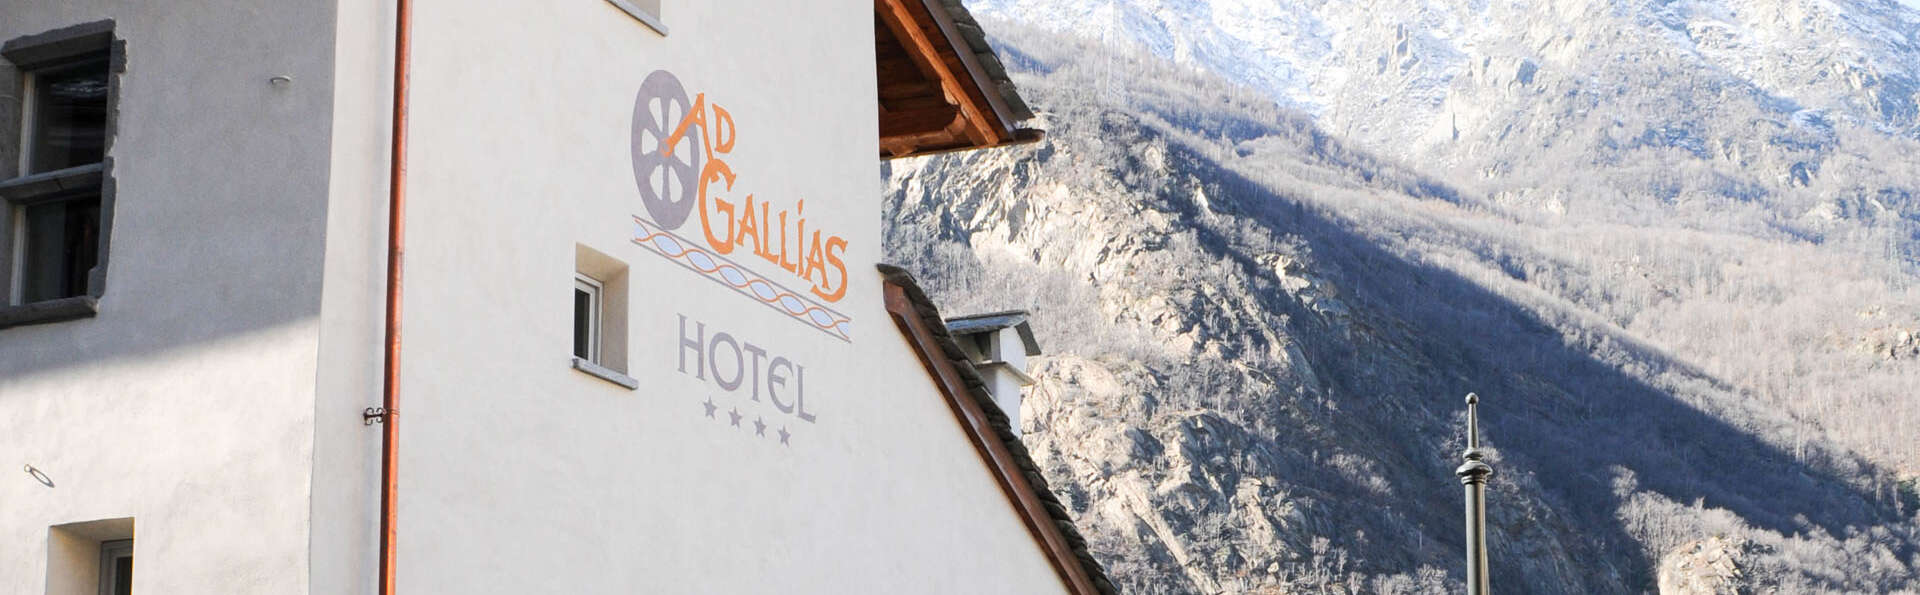 Hotel Ad Gallias - EDIT_NEW_EXTERIOR.jpg